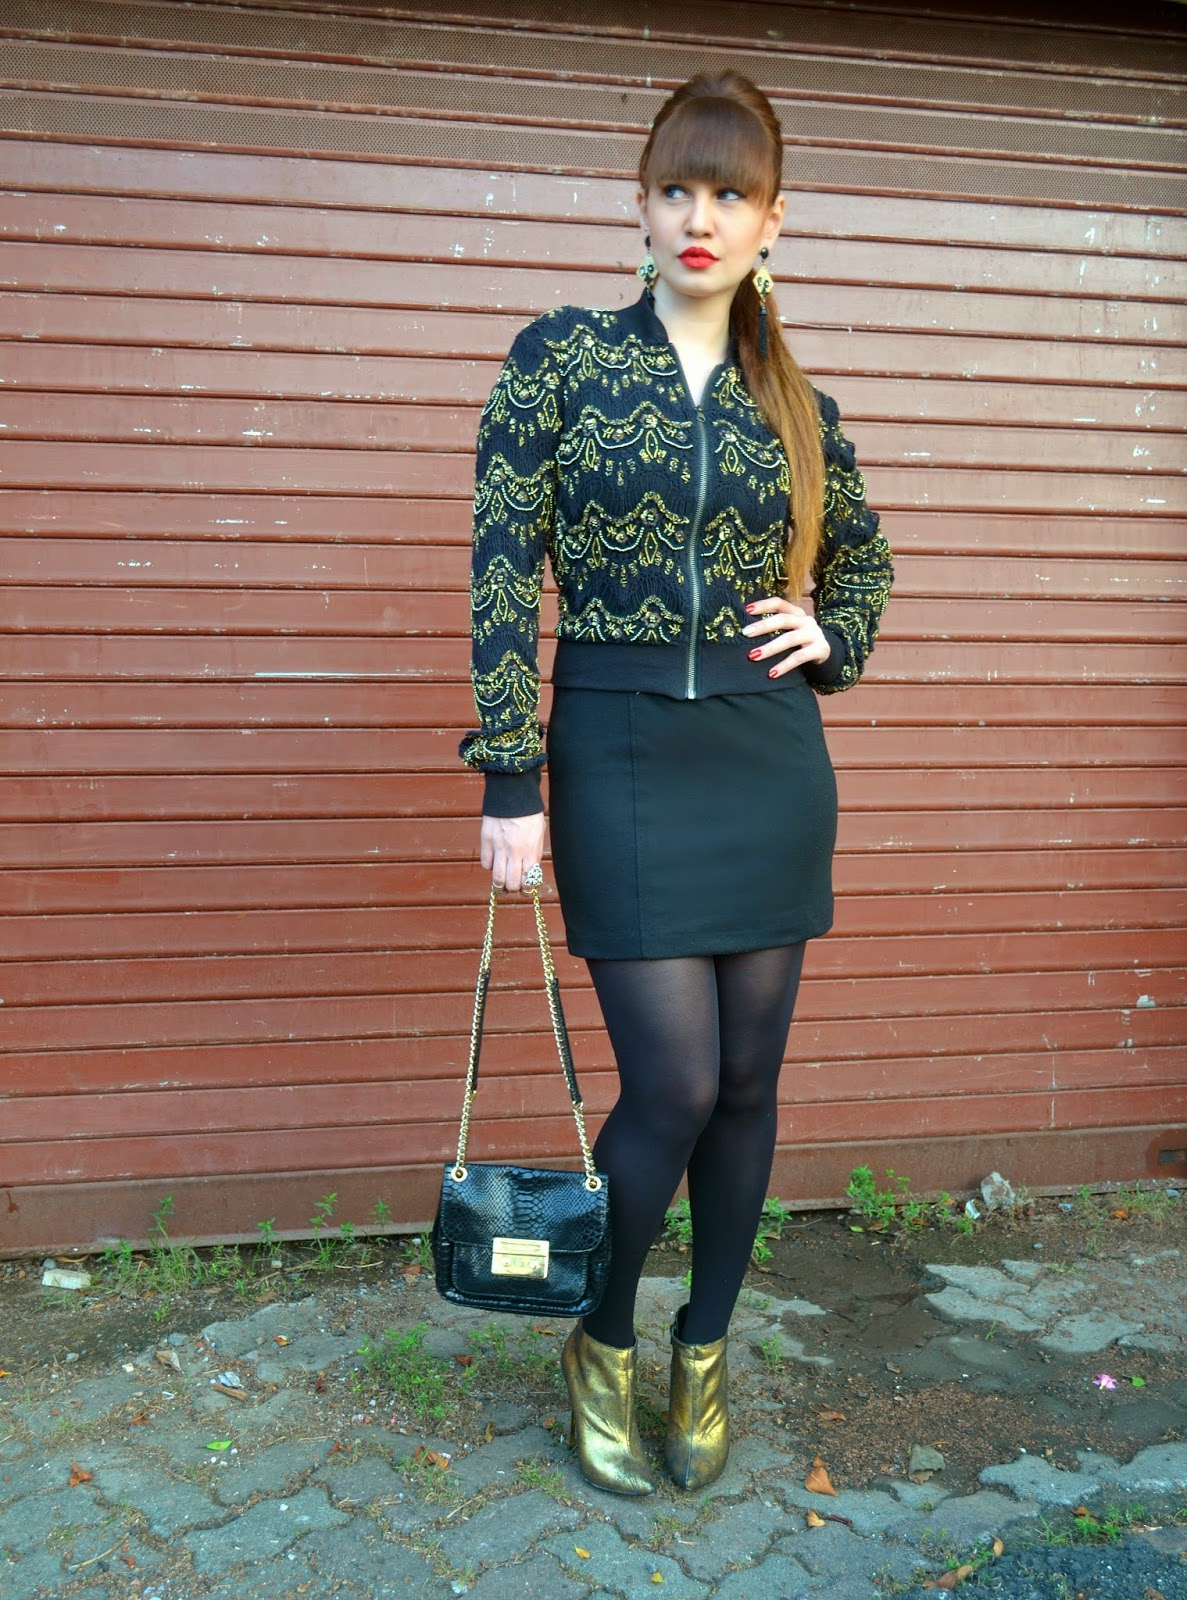 Baroque Bomber Jacket over an LBD